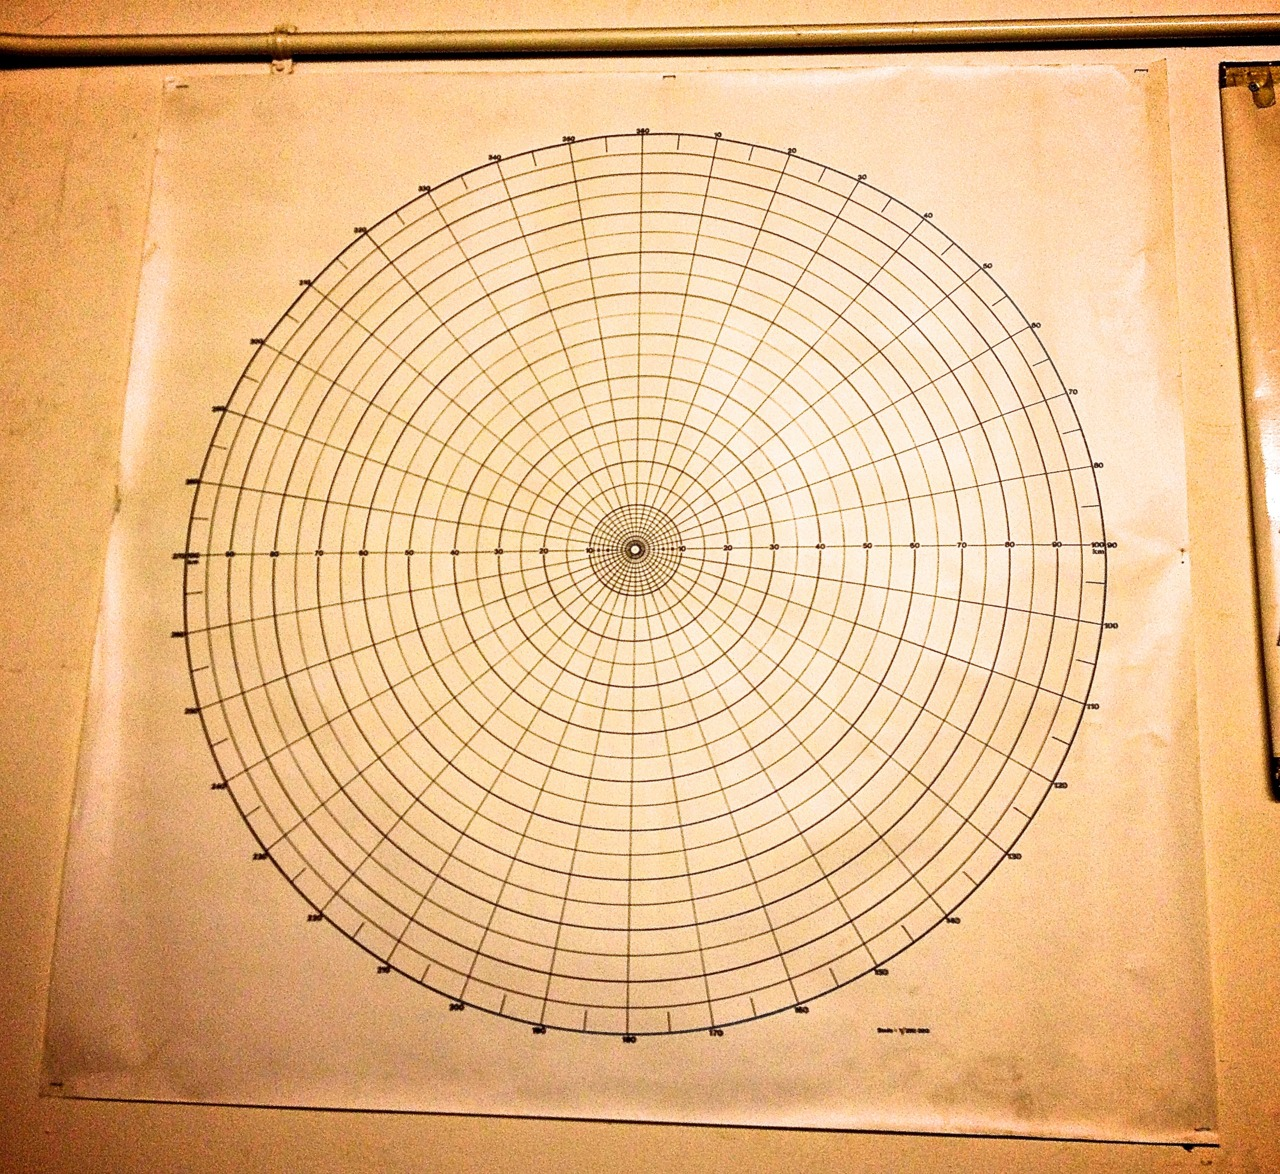 Blast radius chart taken at Kelvedon Hatch Bunker.